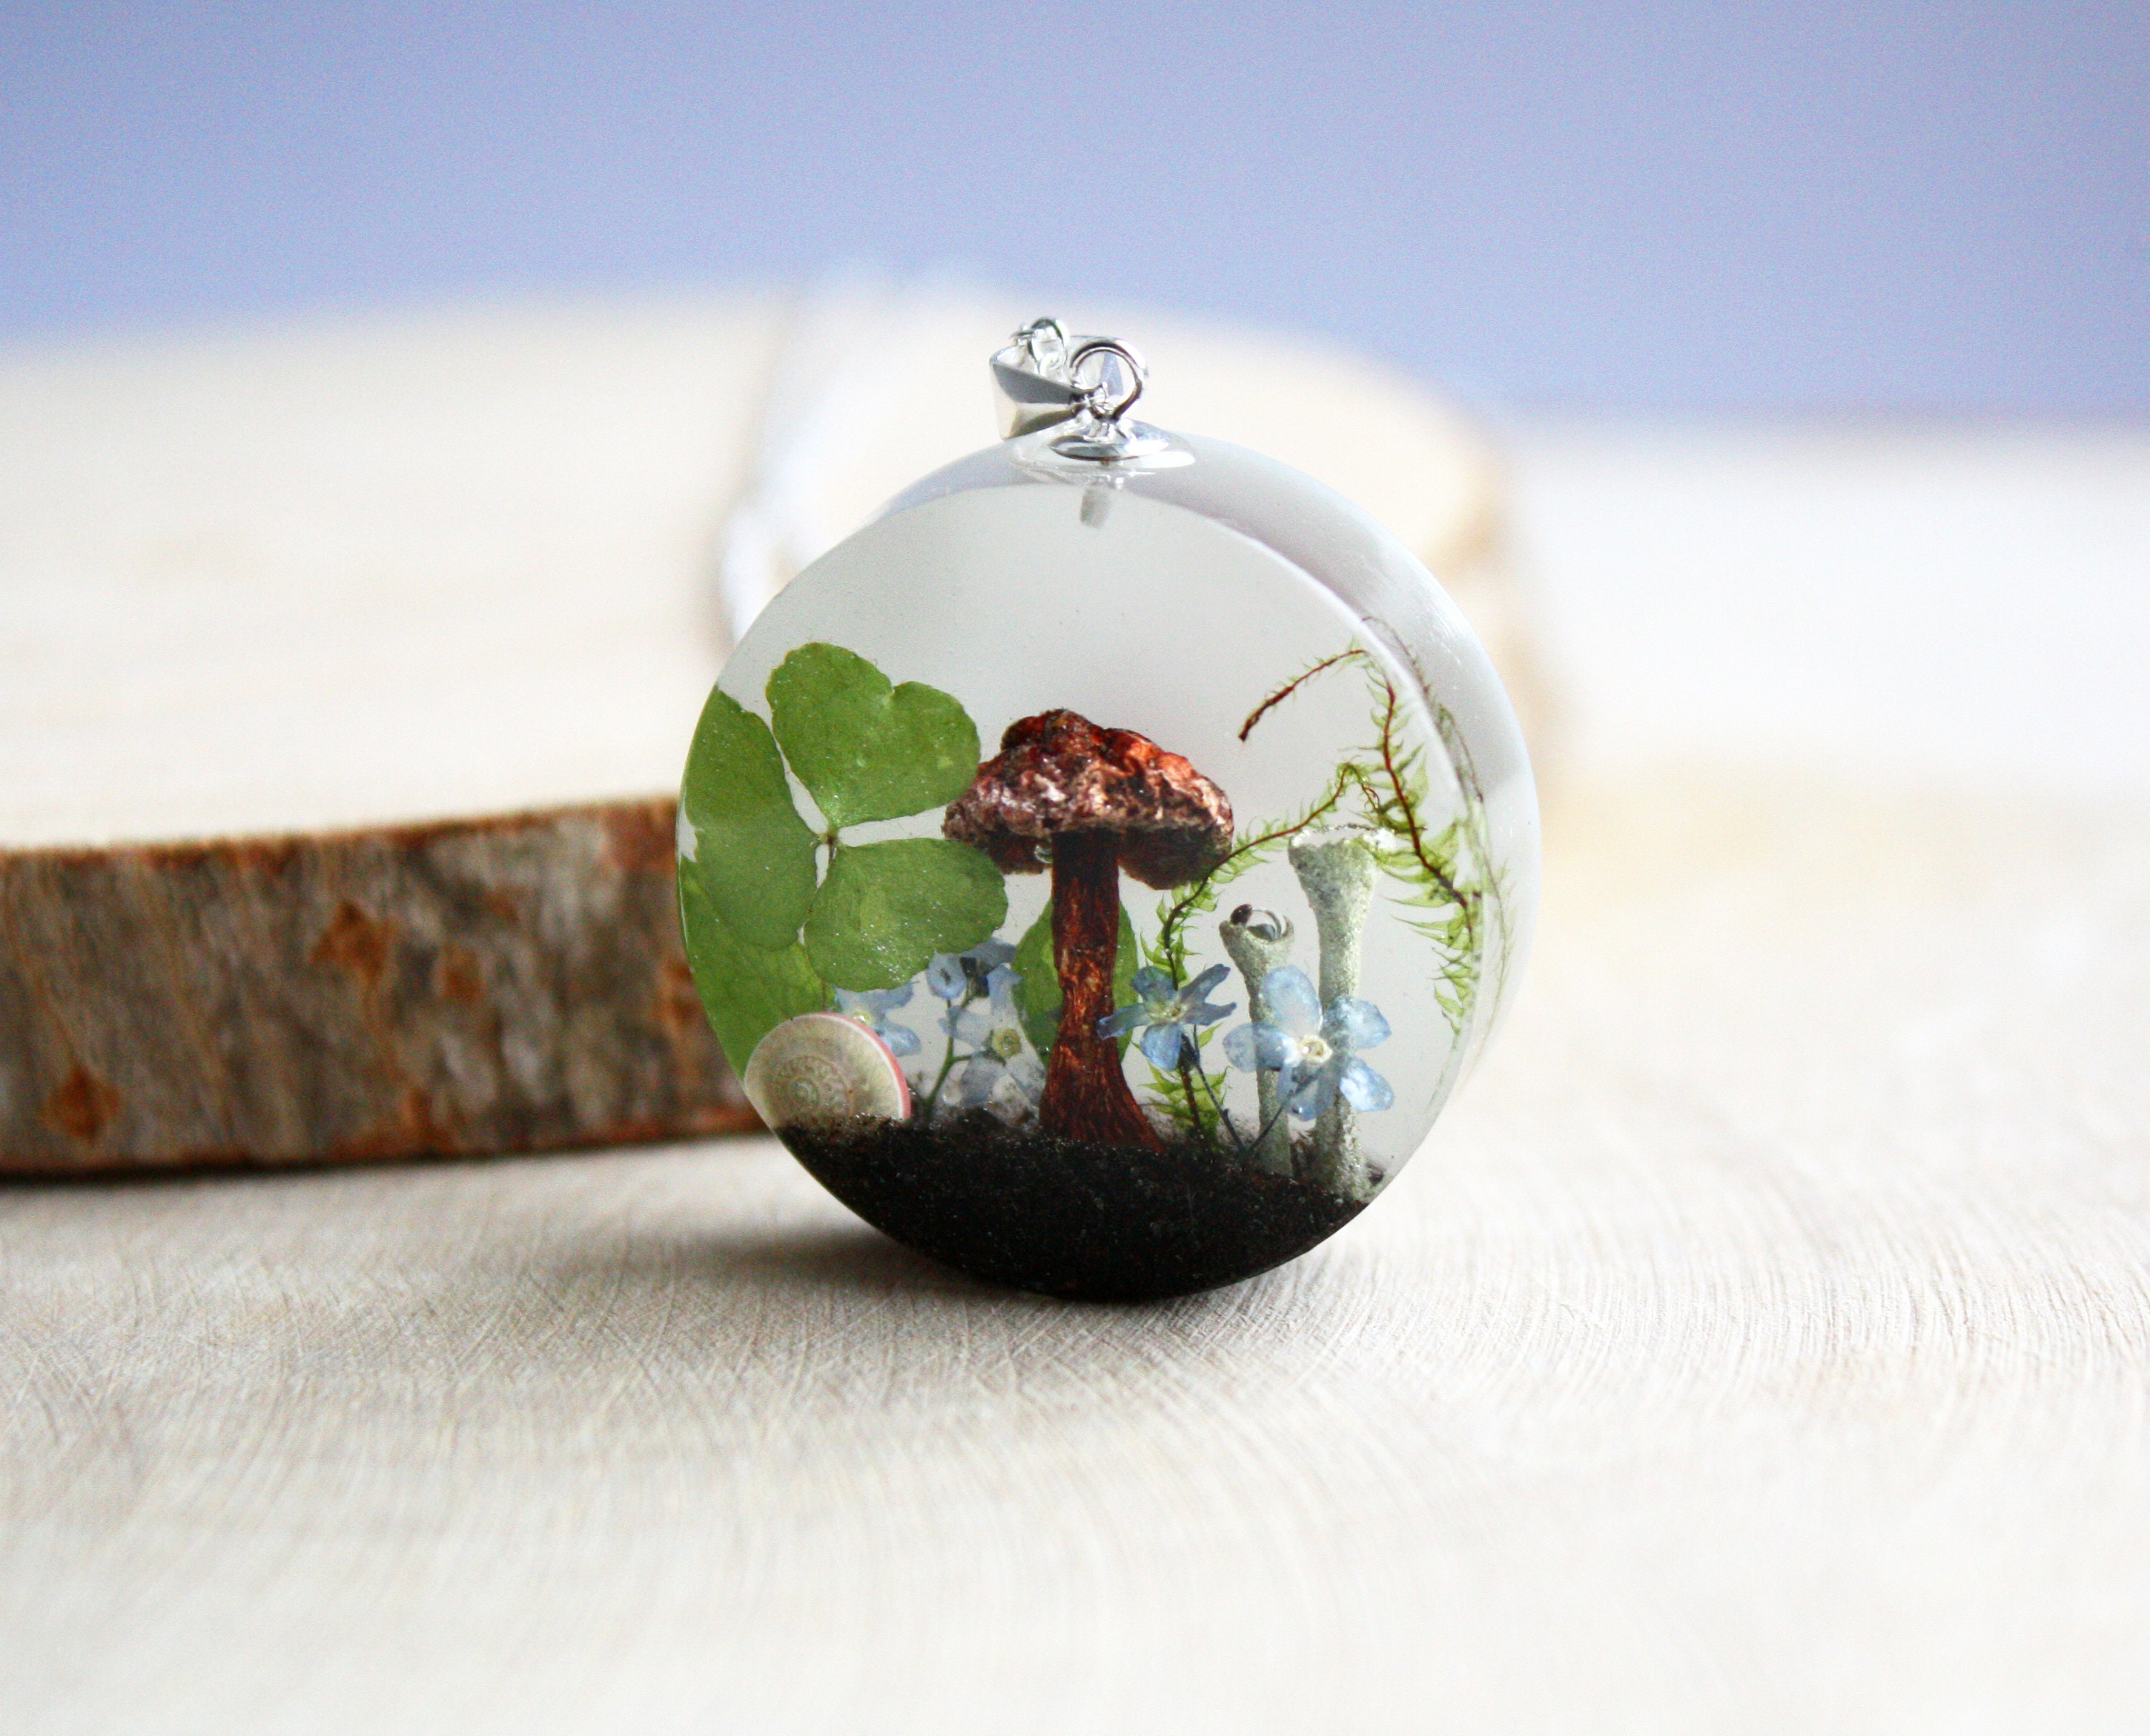 Mushroom Snail Shell Moss Forget Me Not Clover Terrarium Necklace Resin Medallion Pendant 925 Sterling Silver Valentine Gift For Her